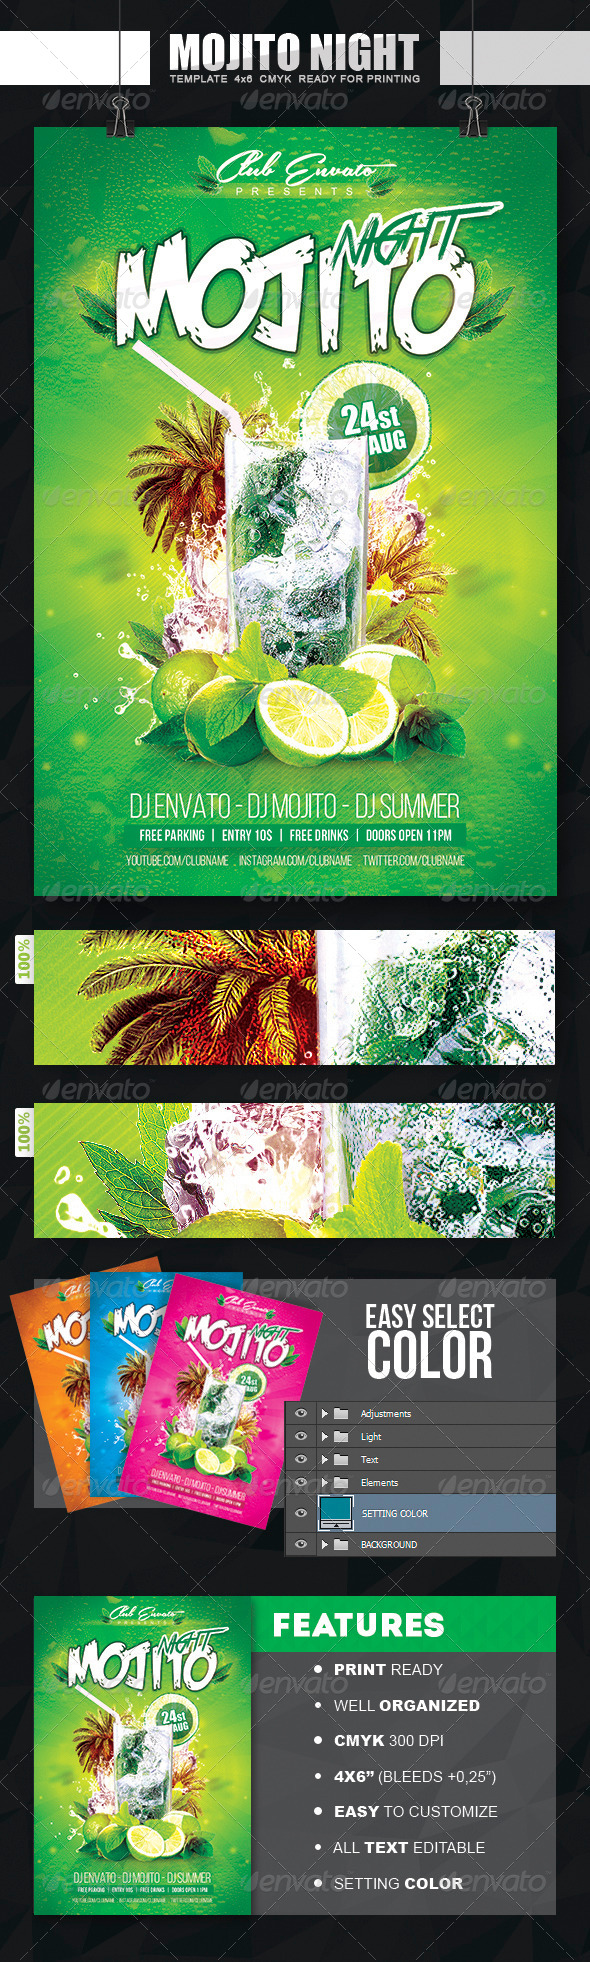 GraphicRiver Mojito Night Flyer 8286183